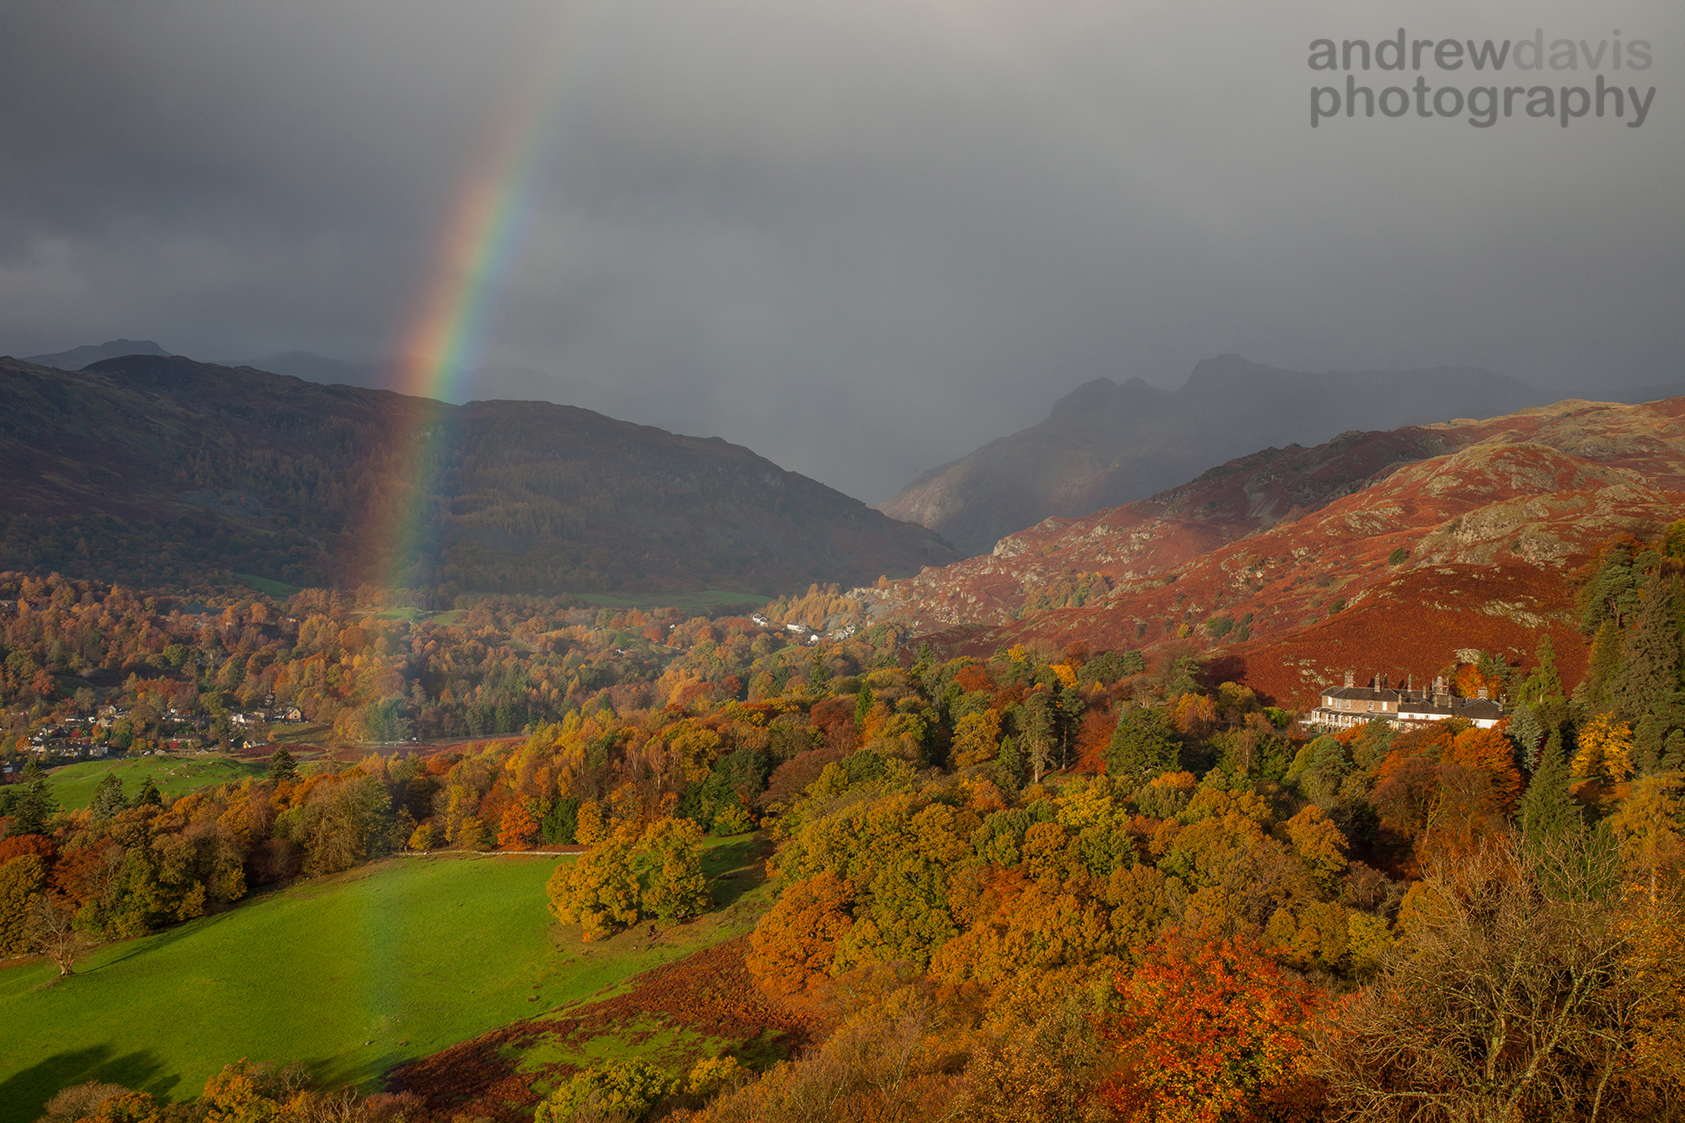 Rainbow over the Langdale Valley, Cumbria